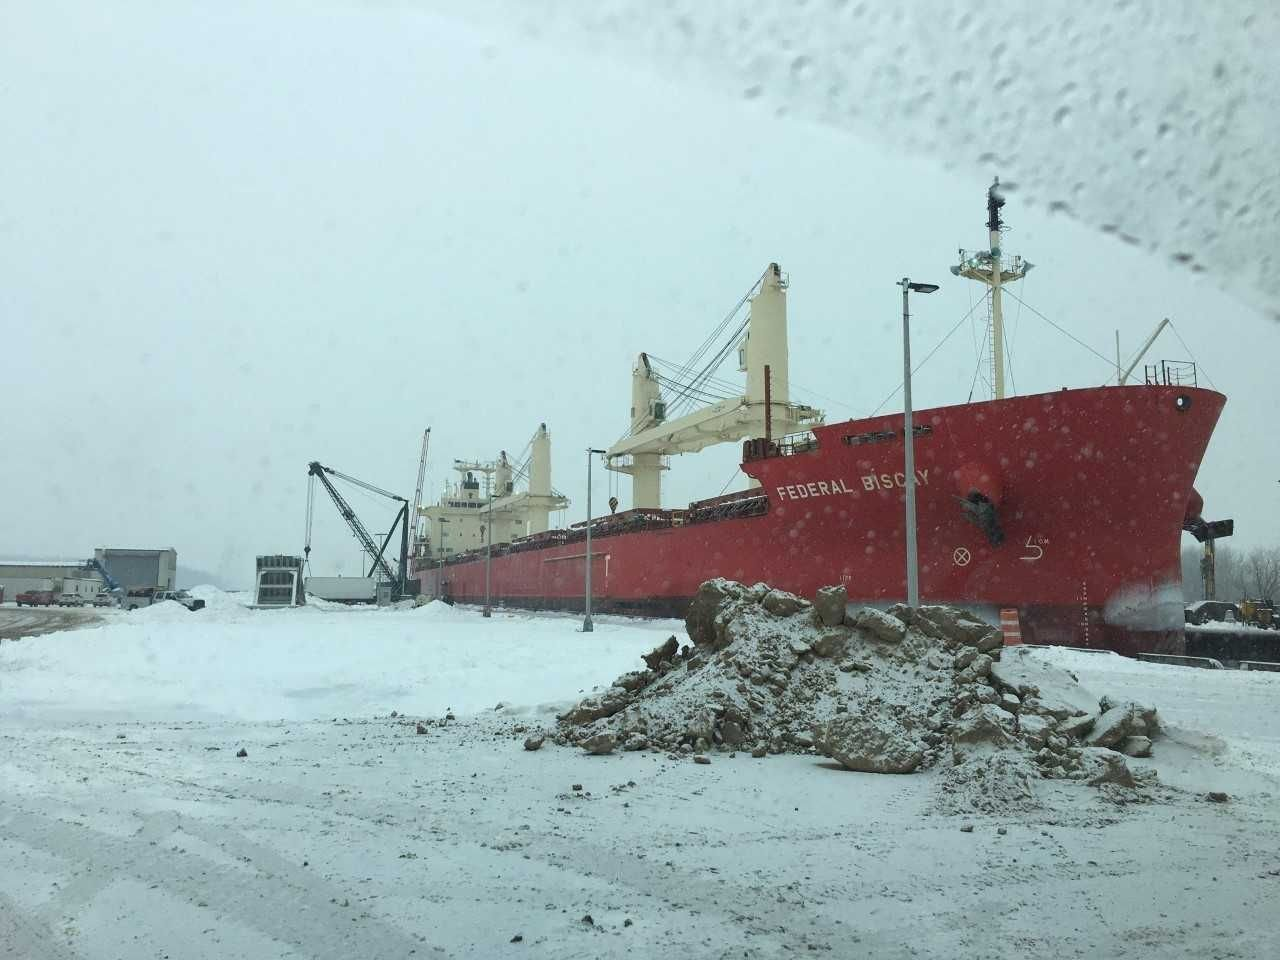 Ship Jammed in Icy Seaway